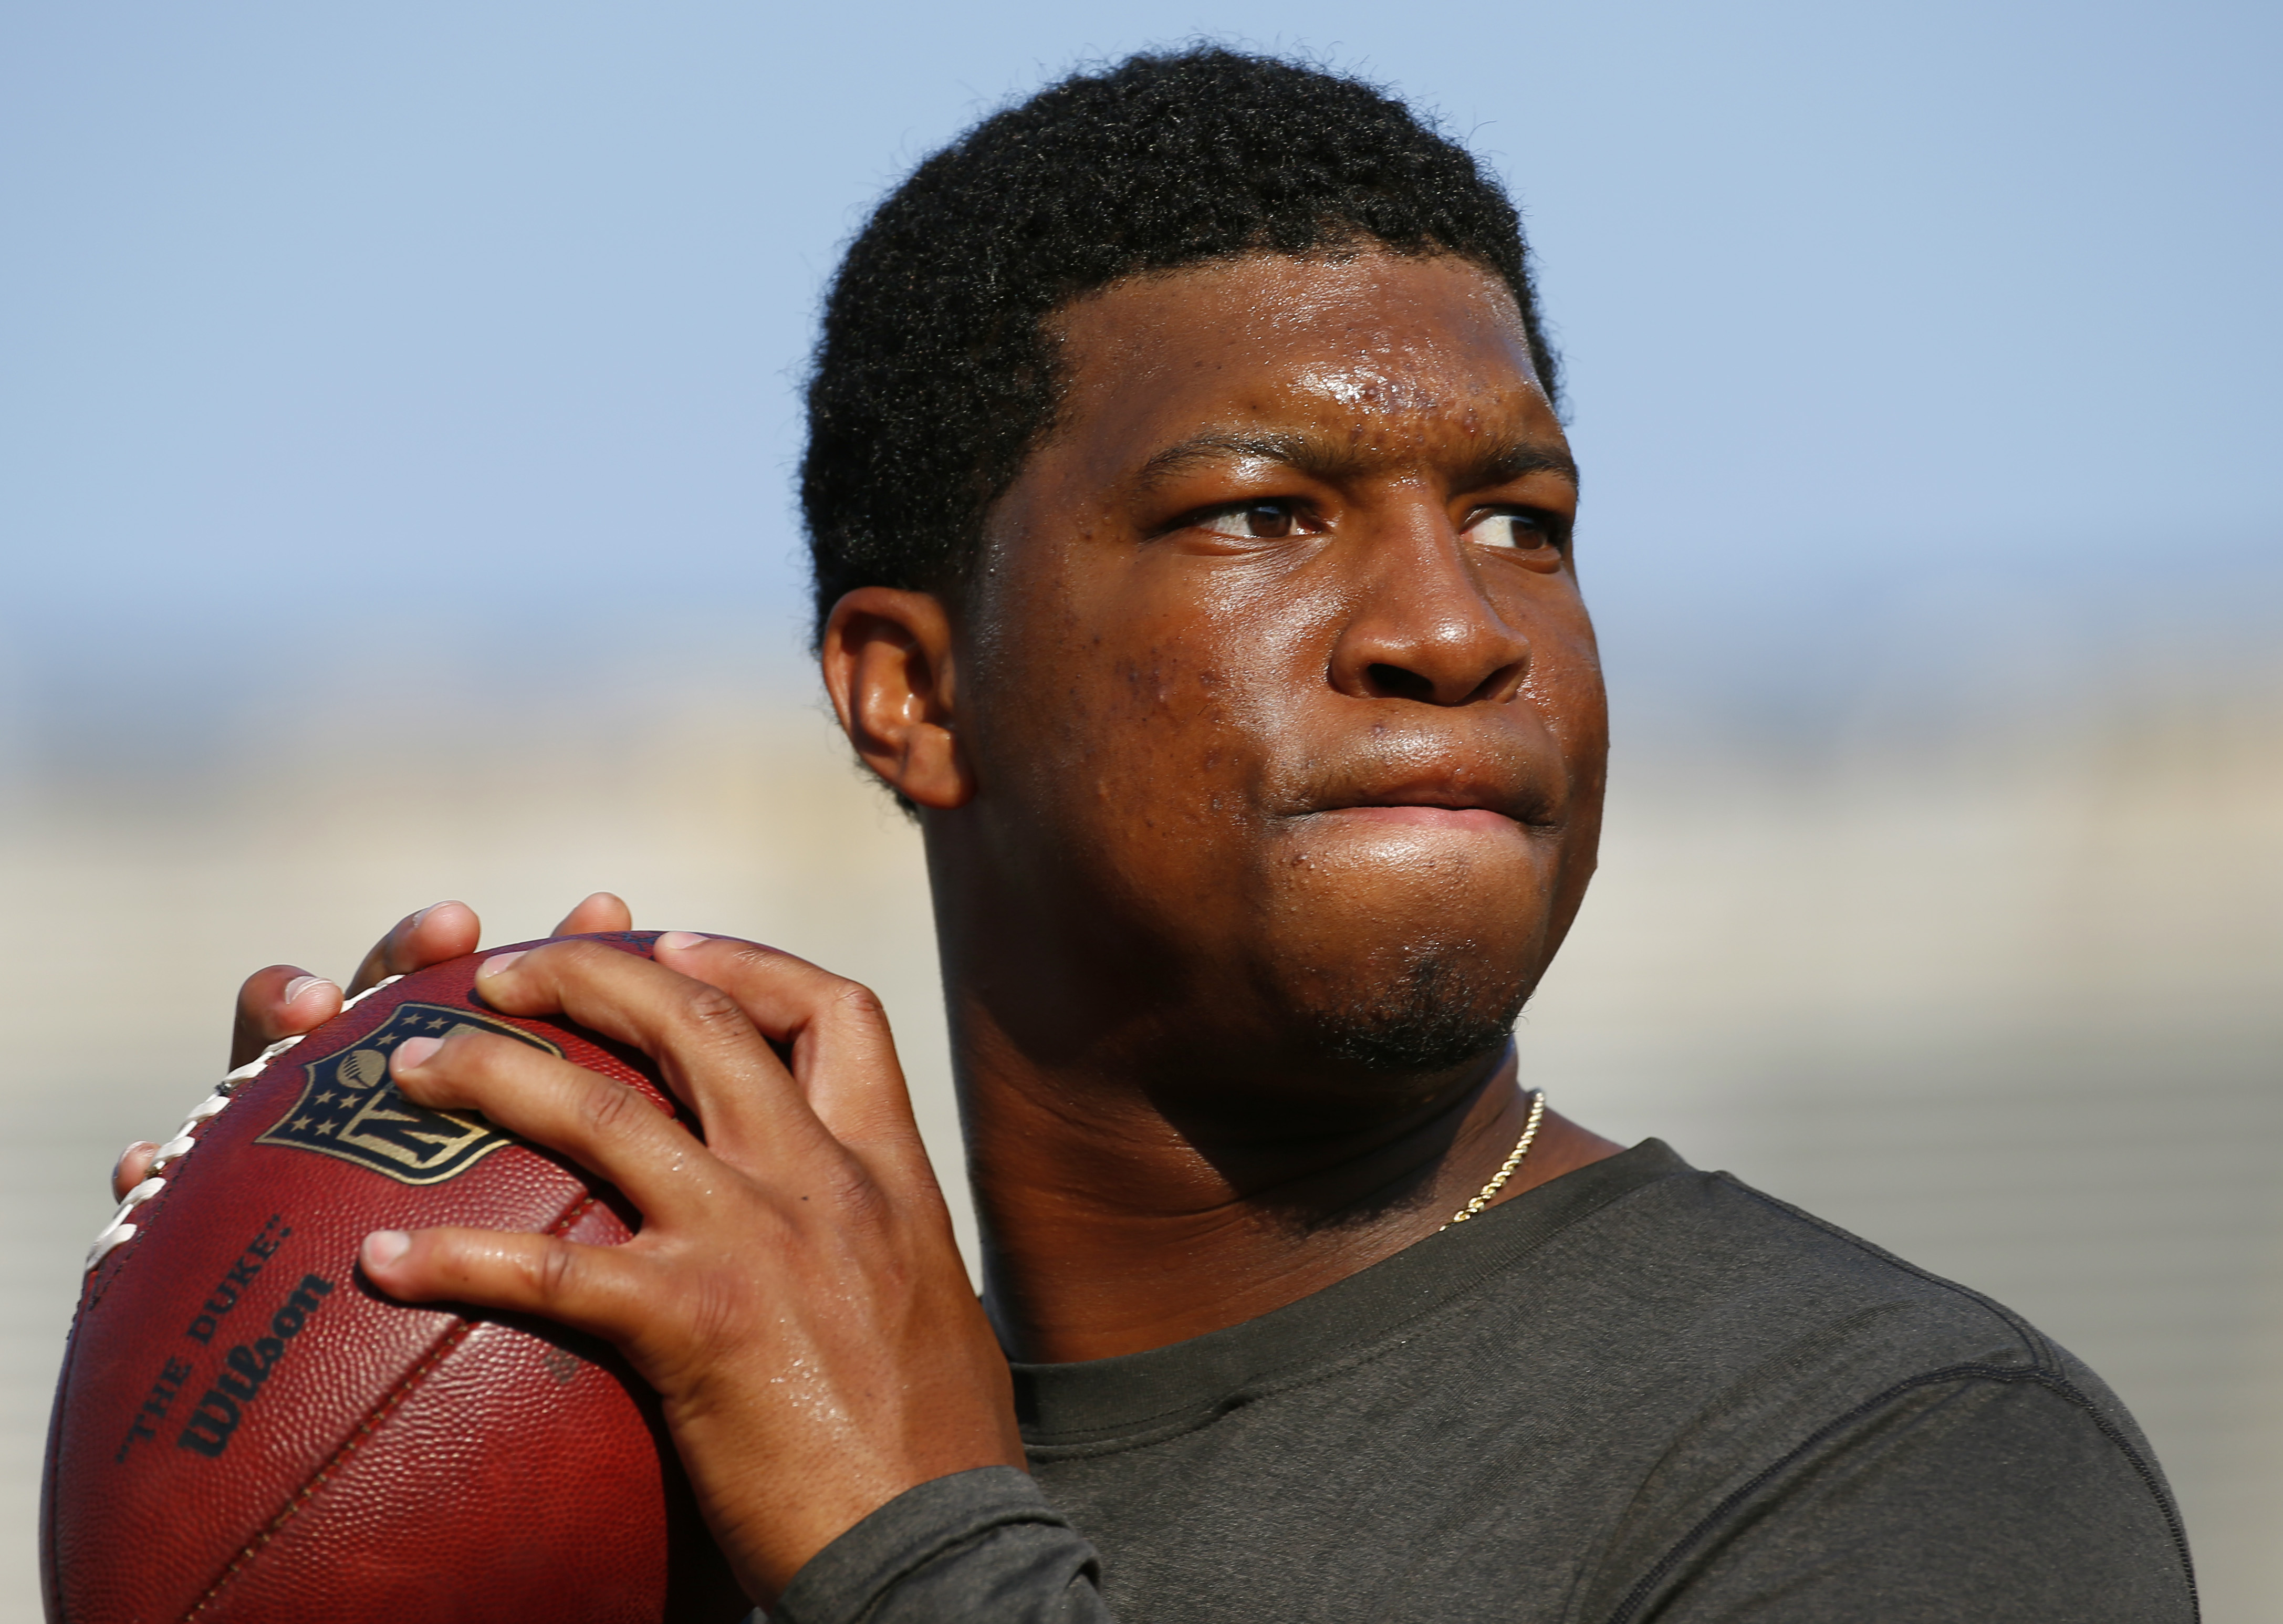 FILE - In this Aug. 15, 2015, file photo, Tampa Bay Buccaneers quarterback Jameis Winston warms up before a preseason NFL football game against the Minnesota Vikings at TCF Bank Stadium in Minneapolis. Florida State University said Monday, Jan. 25, 2016,